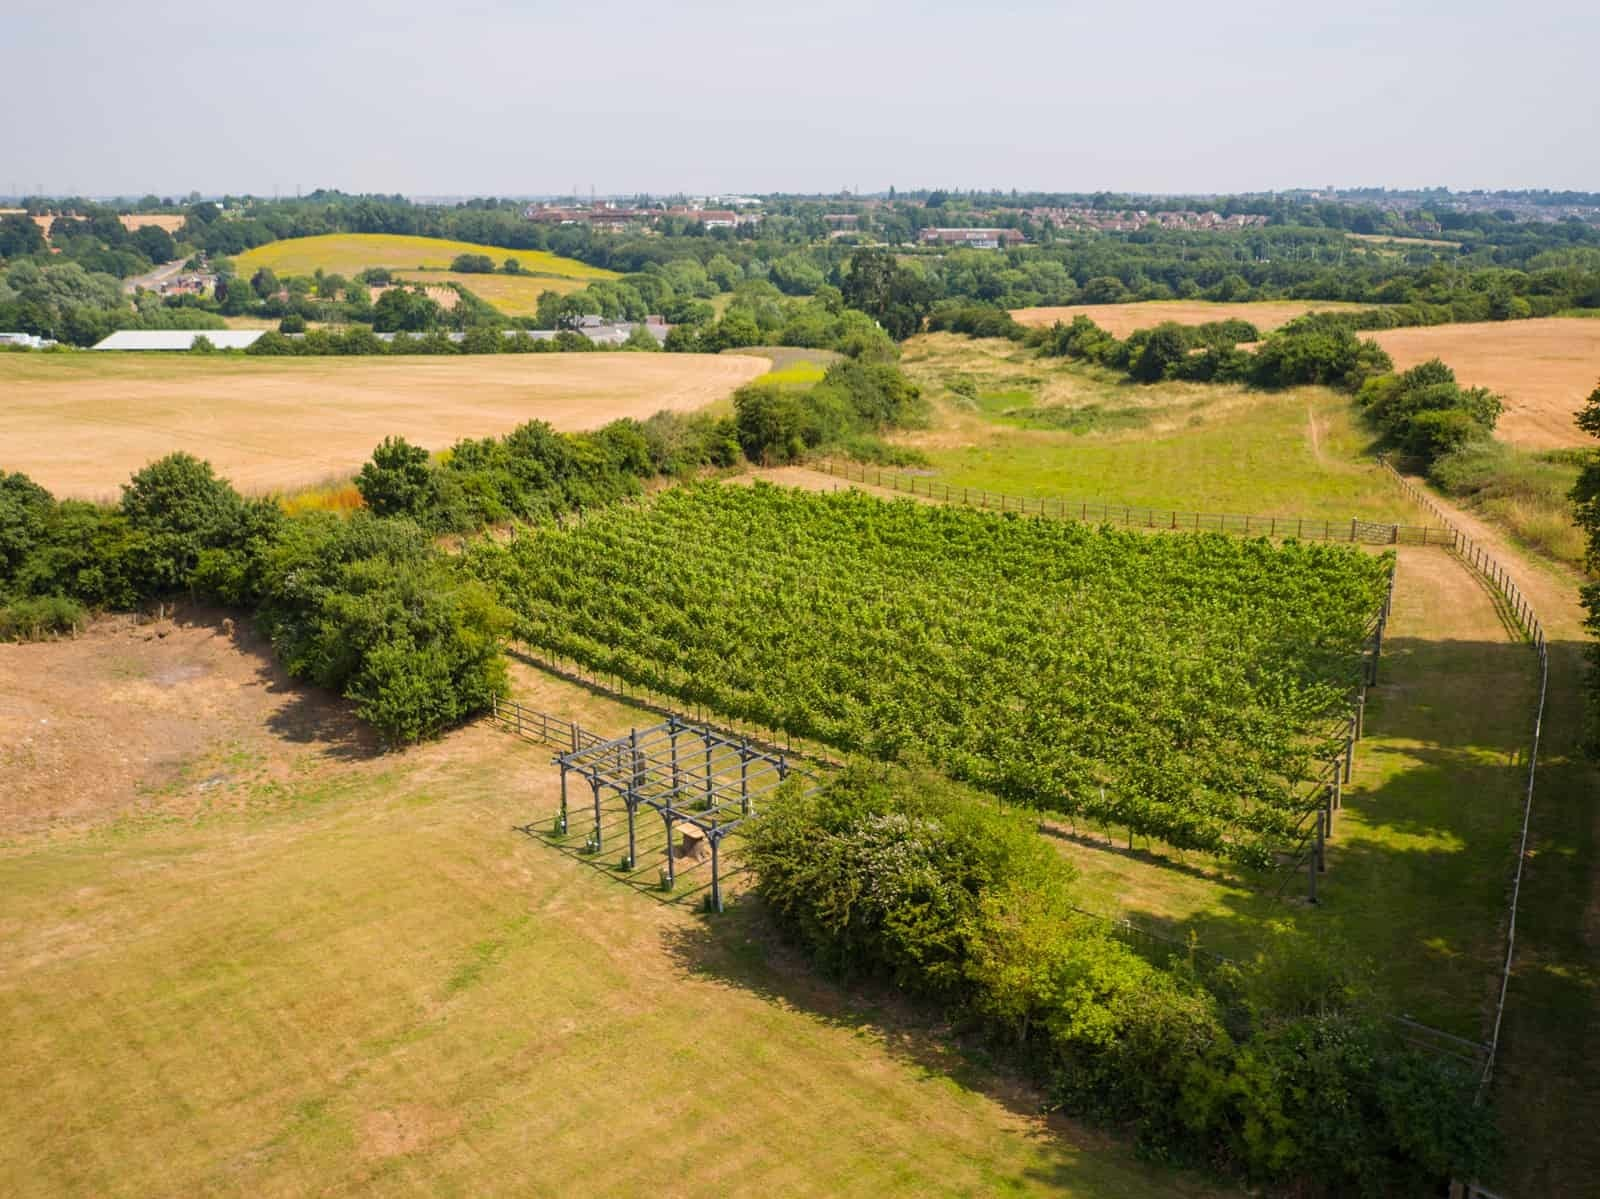 Copdock Hall vineyard from drone